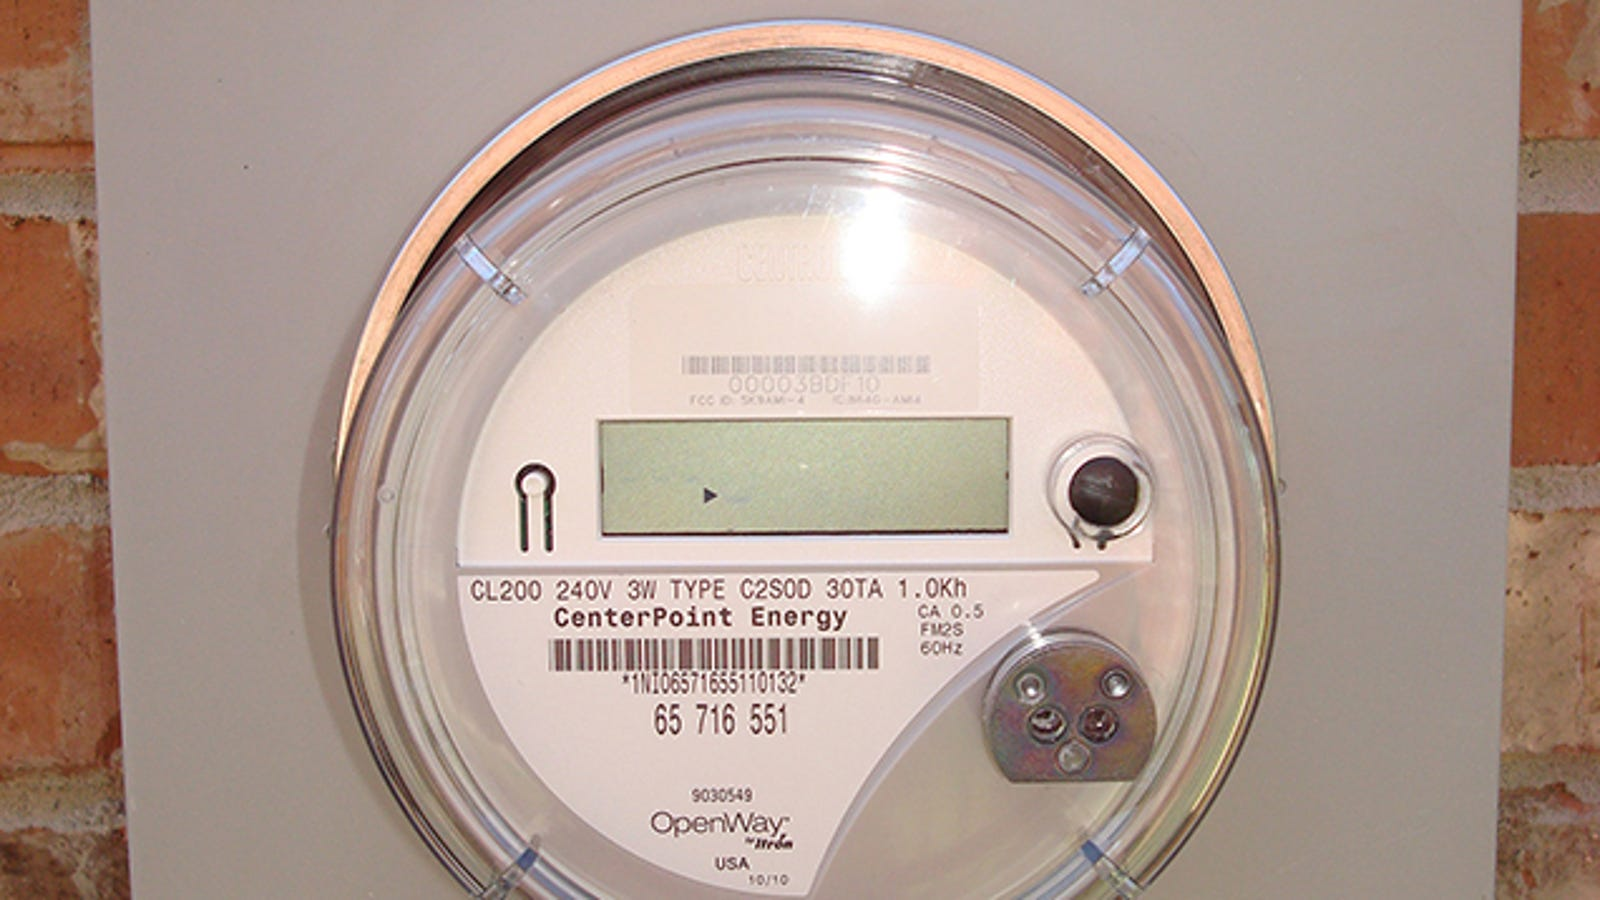 Increasing Electricity Meter : Check your power meter with everything off to identify outside drains